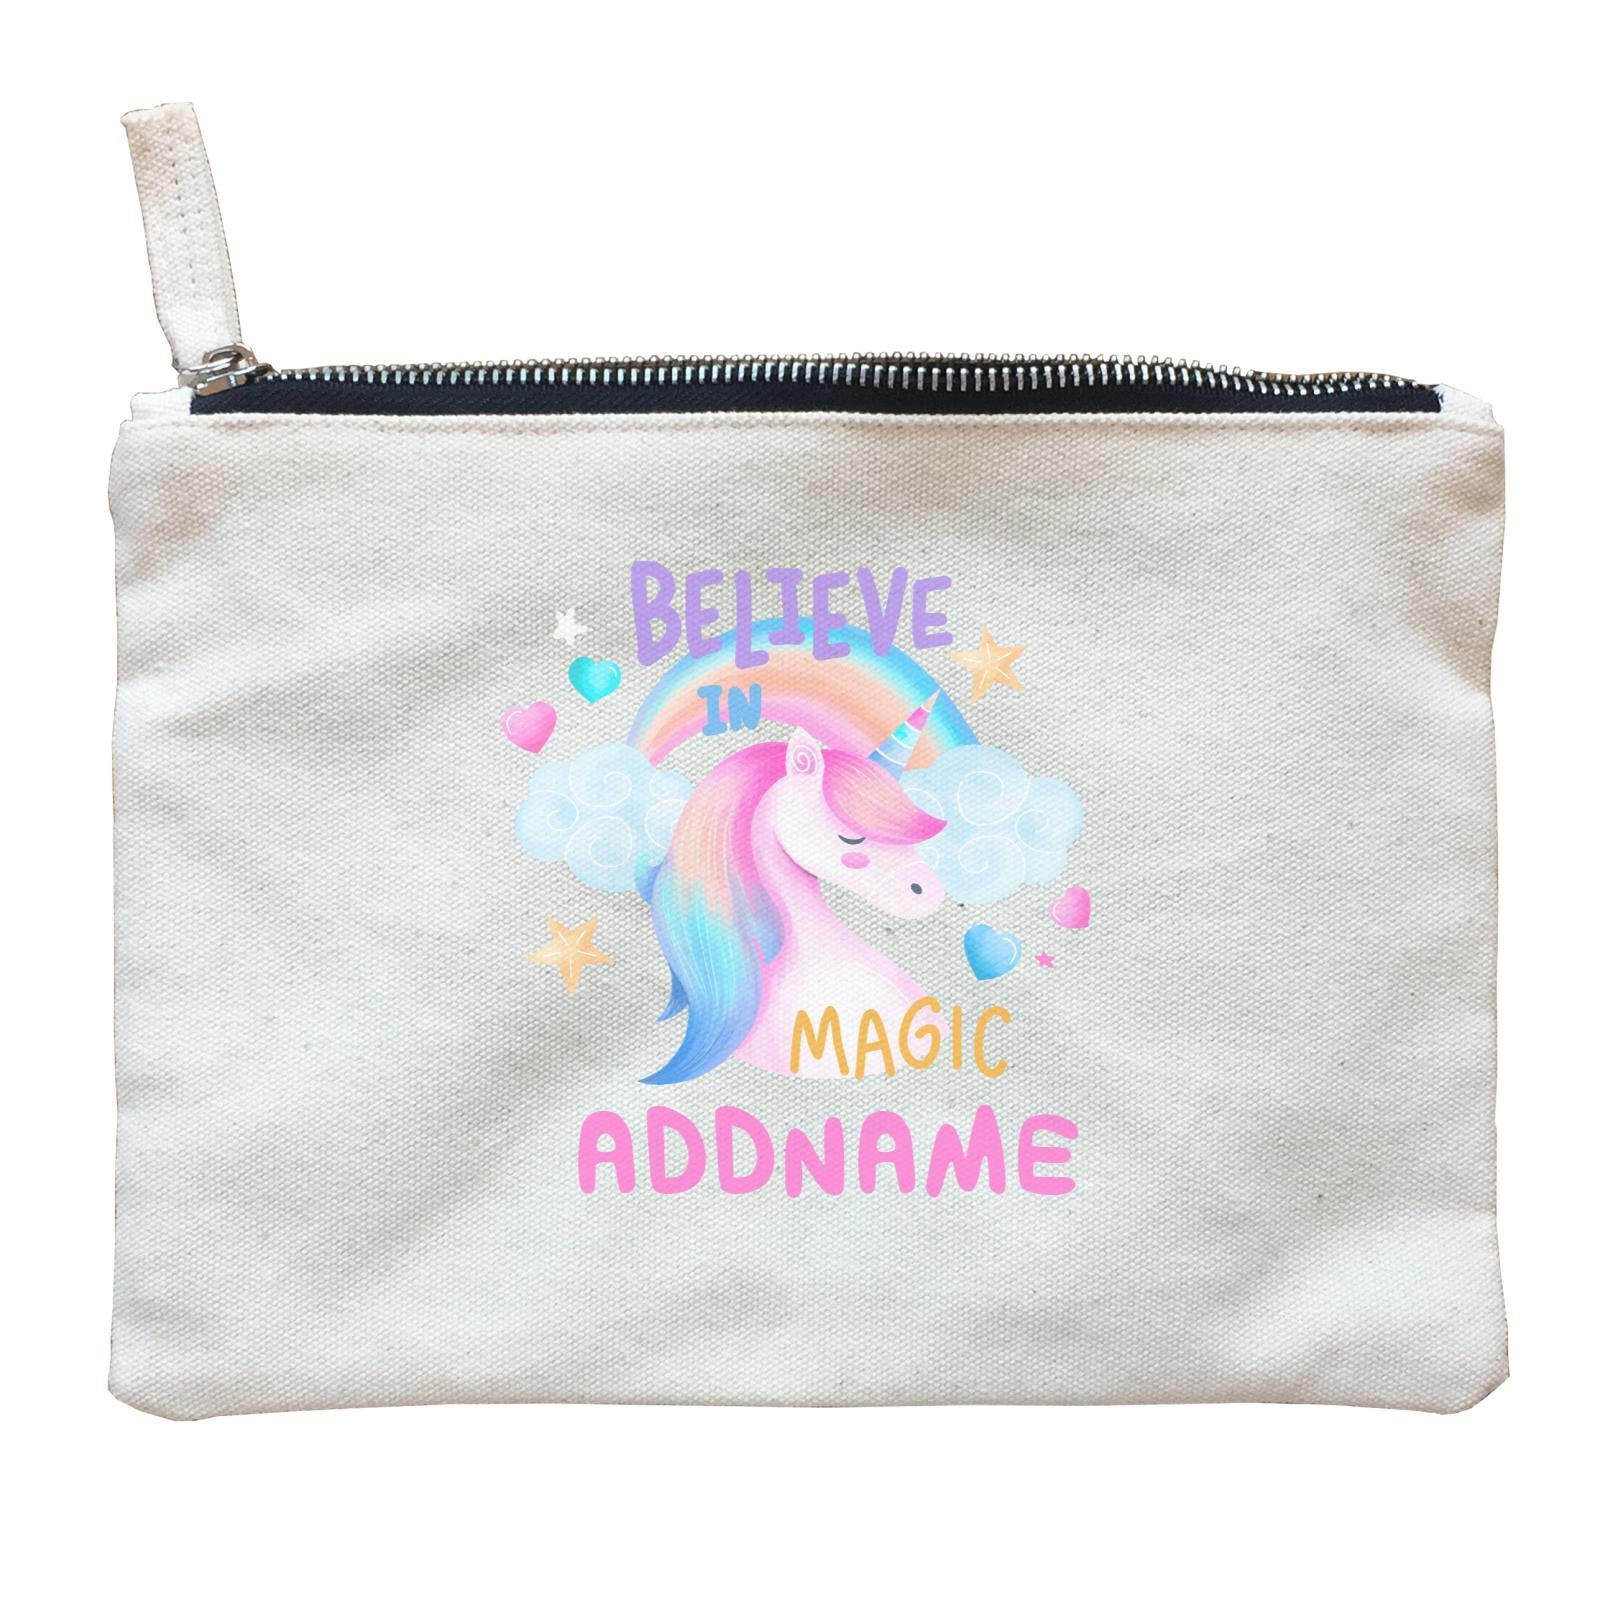 Children's Day Gift Series Believe In Magic Unicorn Addname  Zipper Pouch